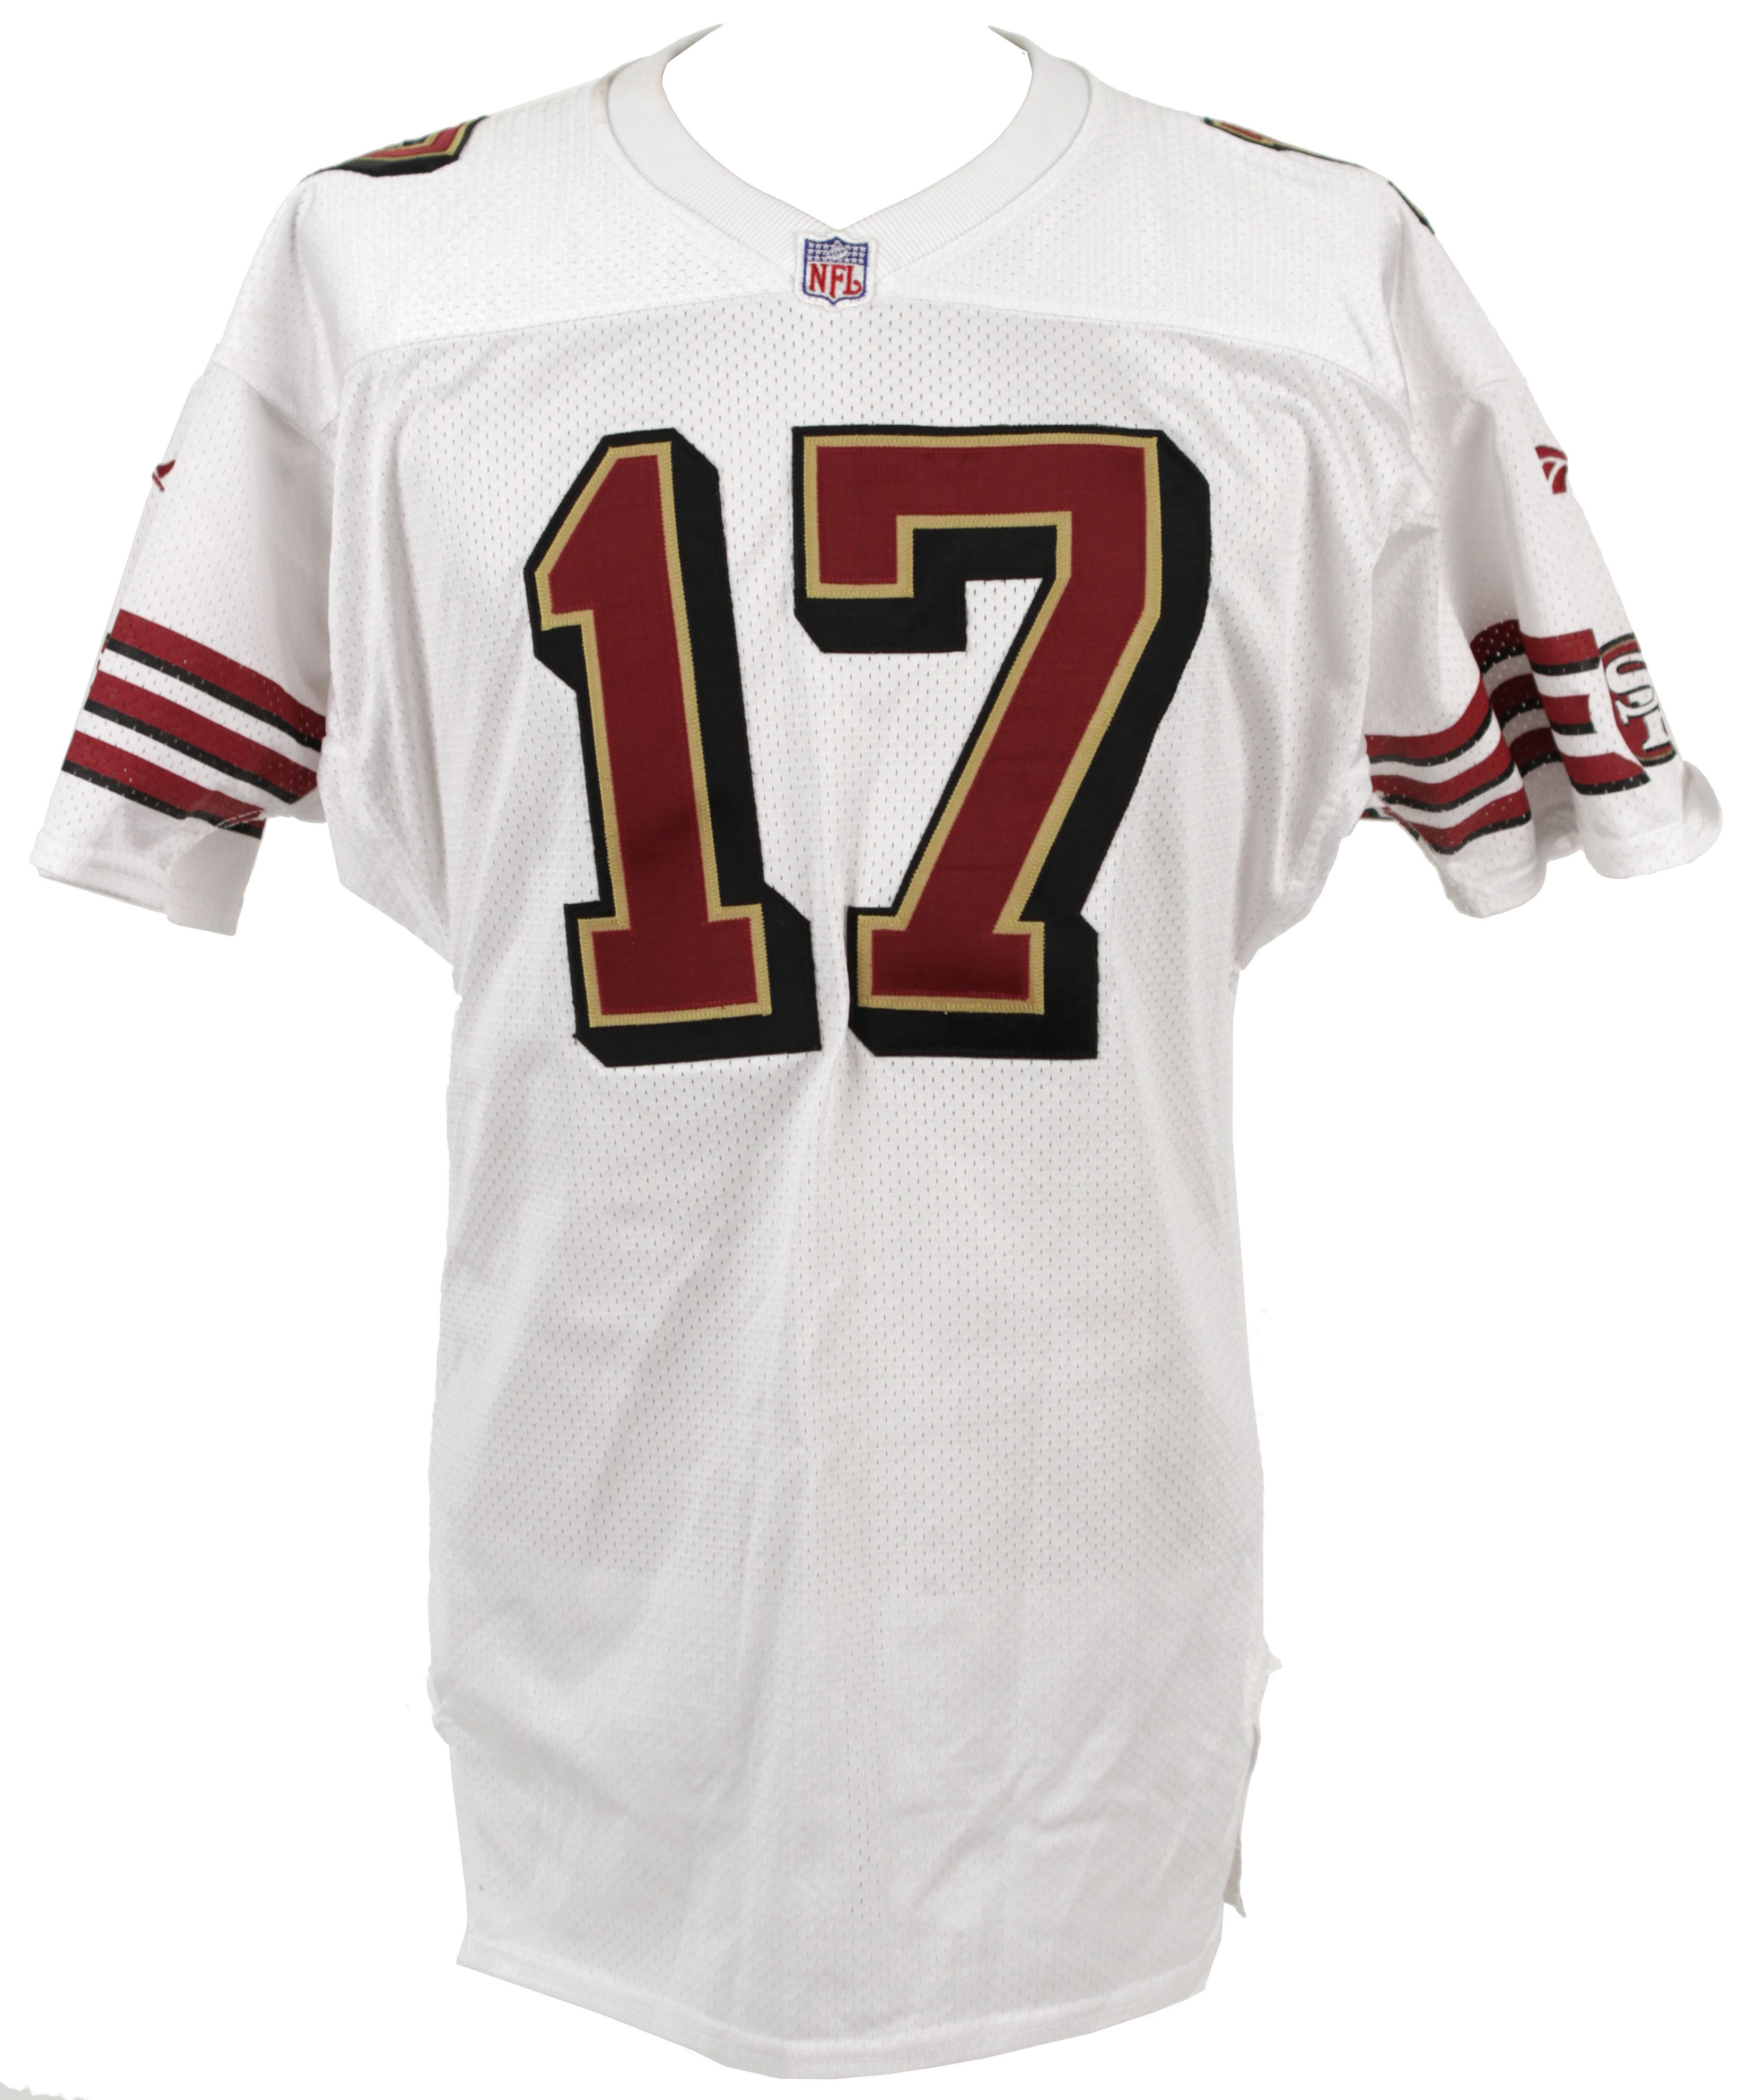 1d0921c21df Lot Detail - 1990s San Francisco 49ers Game Worn  17 Jersey (MEARS LOA)